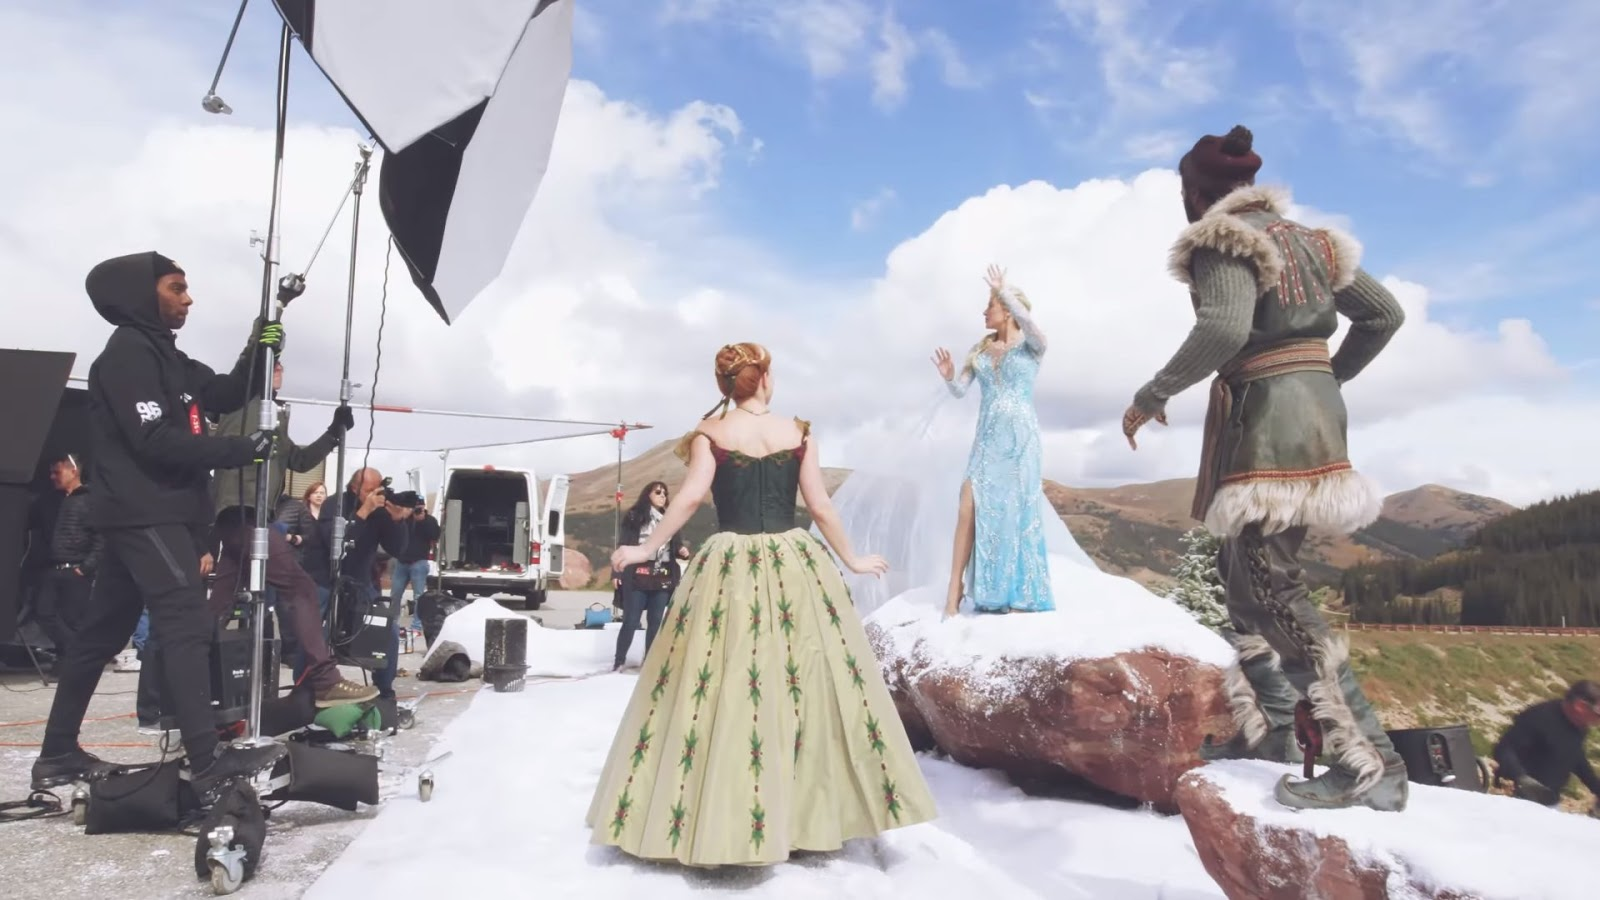 Go Behind the Scenes of the 'Frozen' Broadway Cast's First Photo Shoot